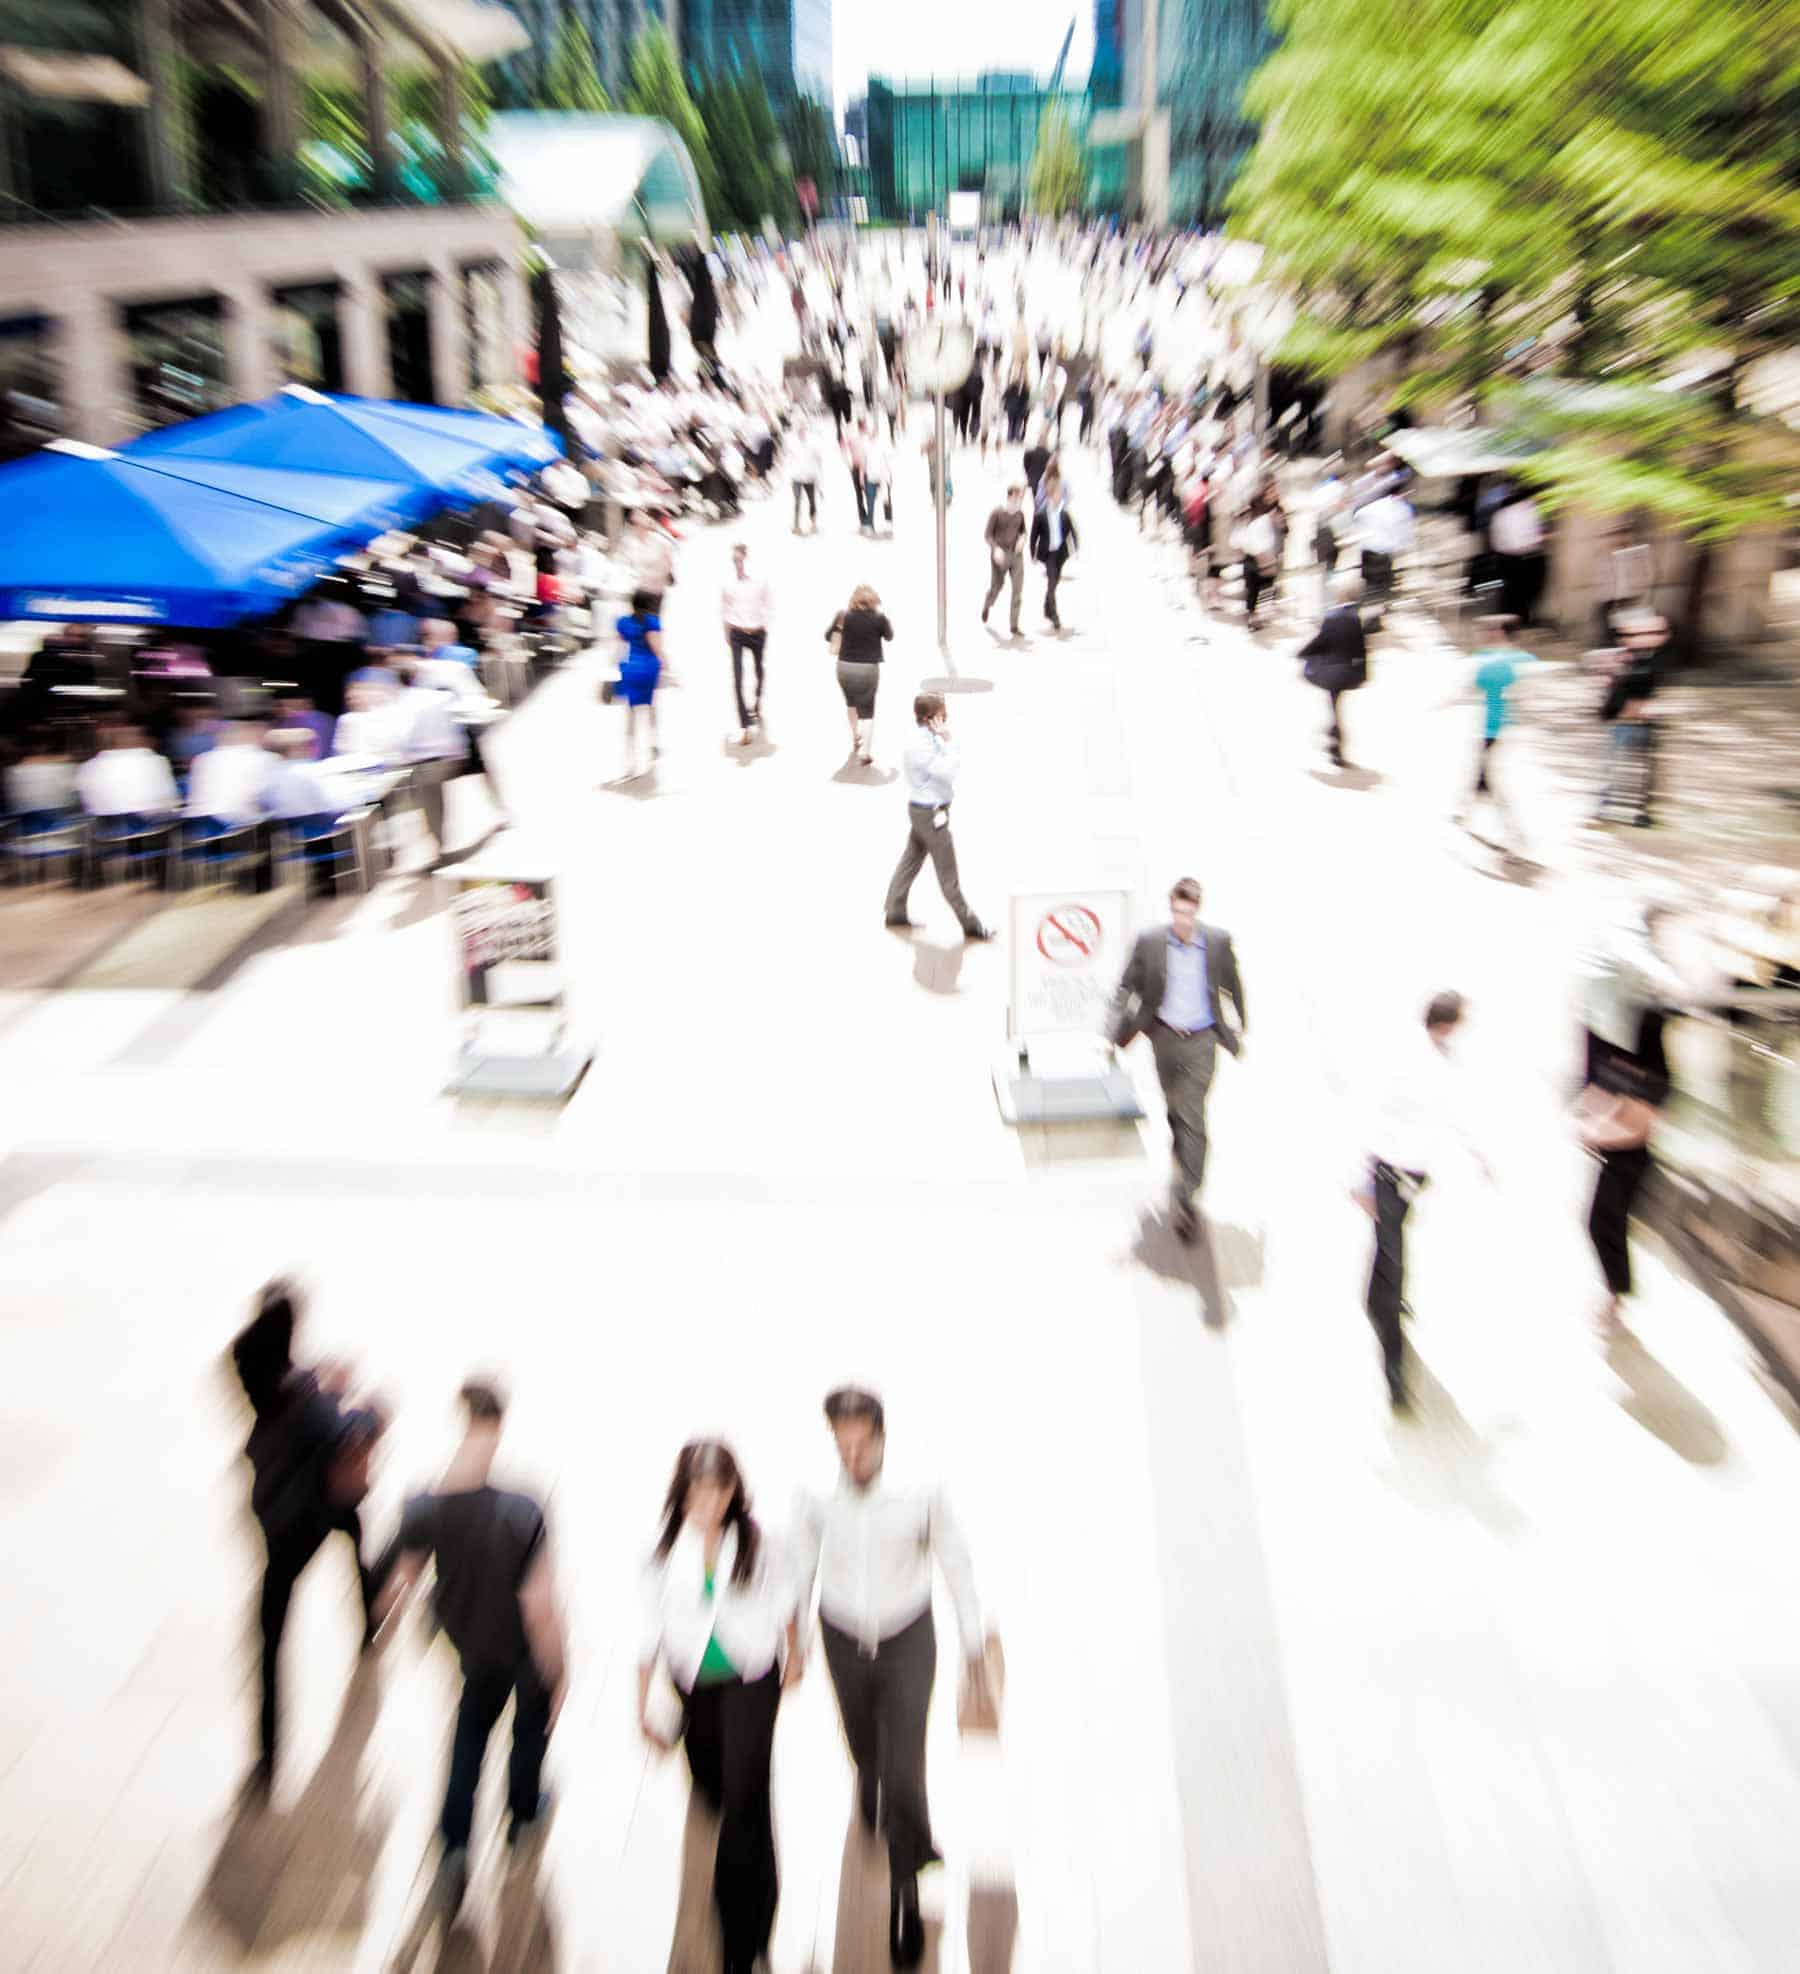 Business rush hour: people walking very fast in a city. Siteground will get your website to be faster.